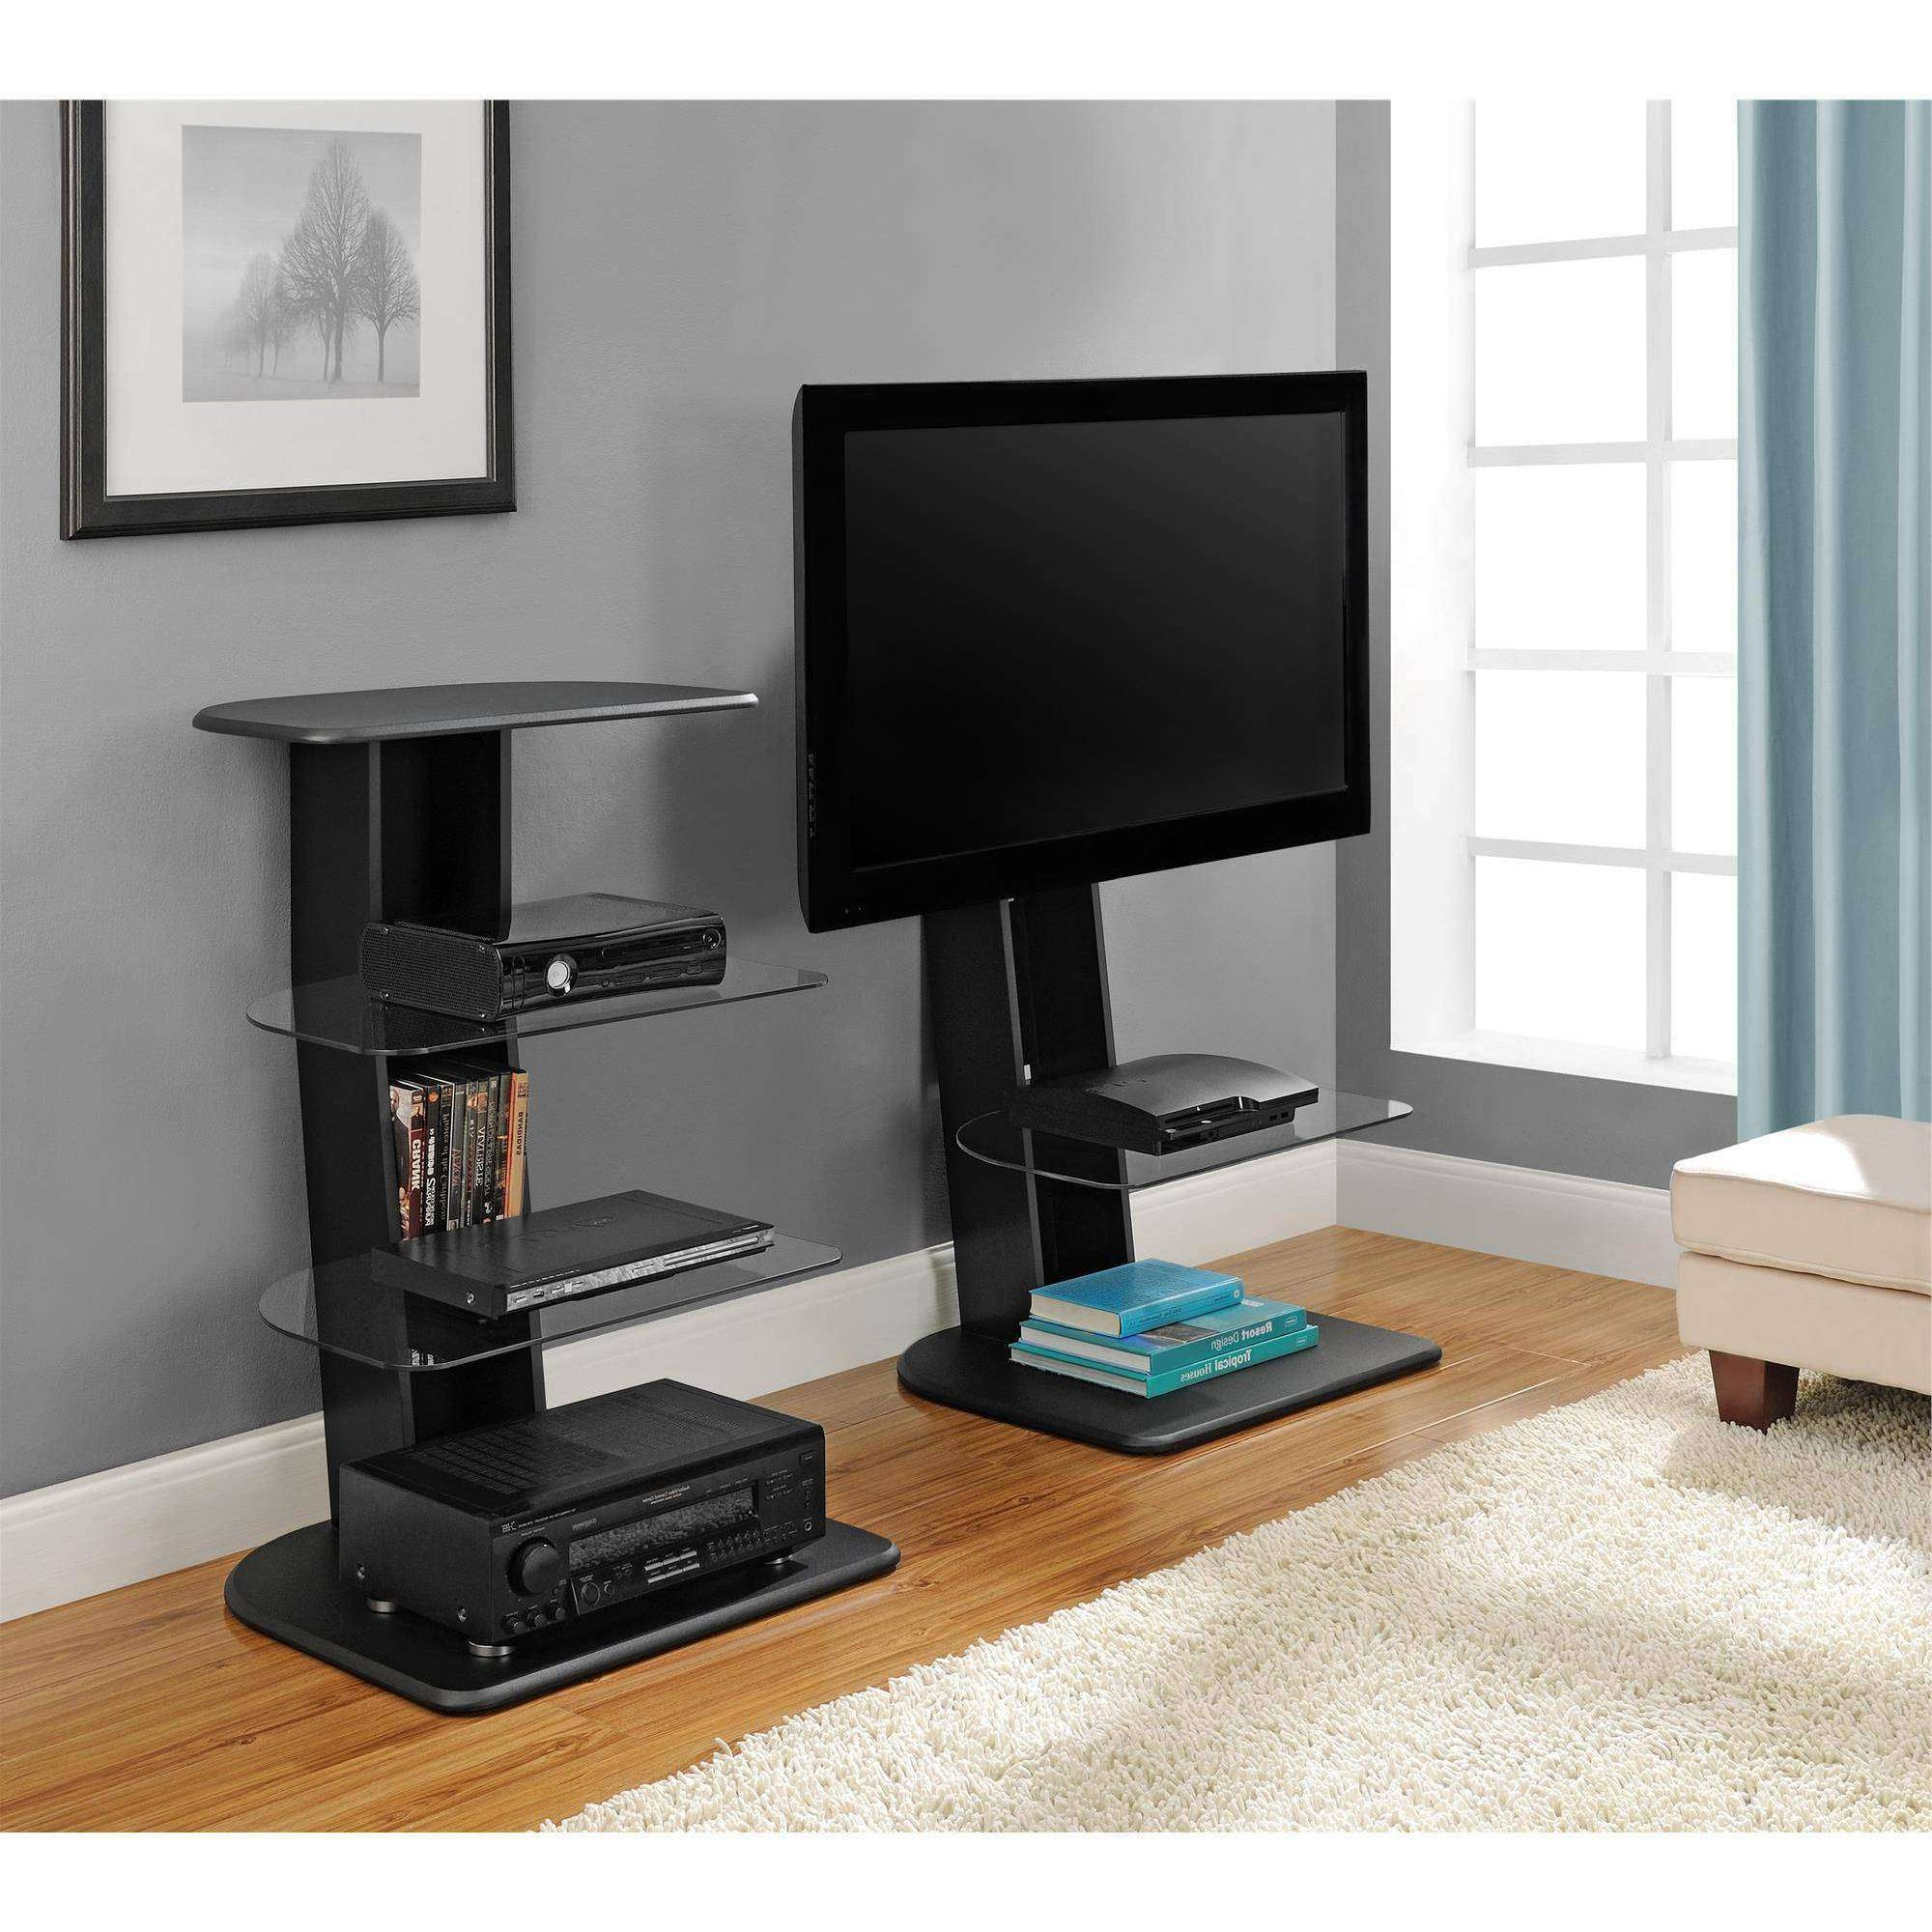 Furnitures : 391447a6146c 1 Inch Tv Stand With Mount Furnitures In 65 Inch Tv Stands With Integrated Mount (View 1 of 15)